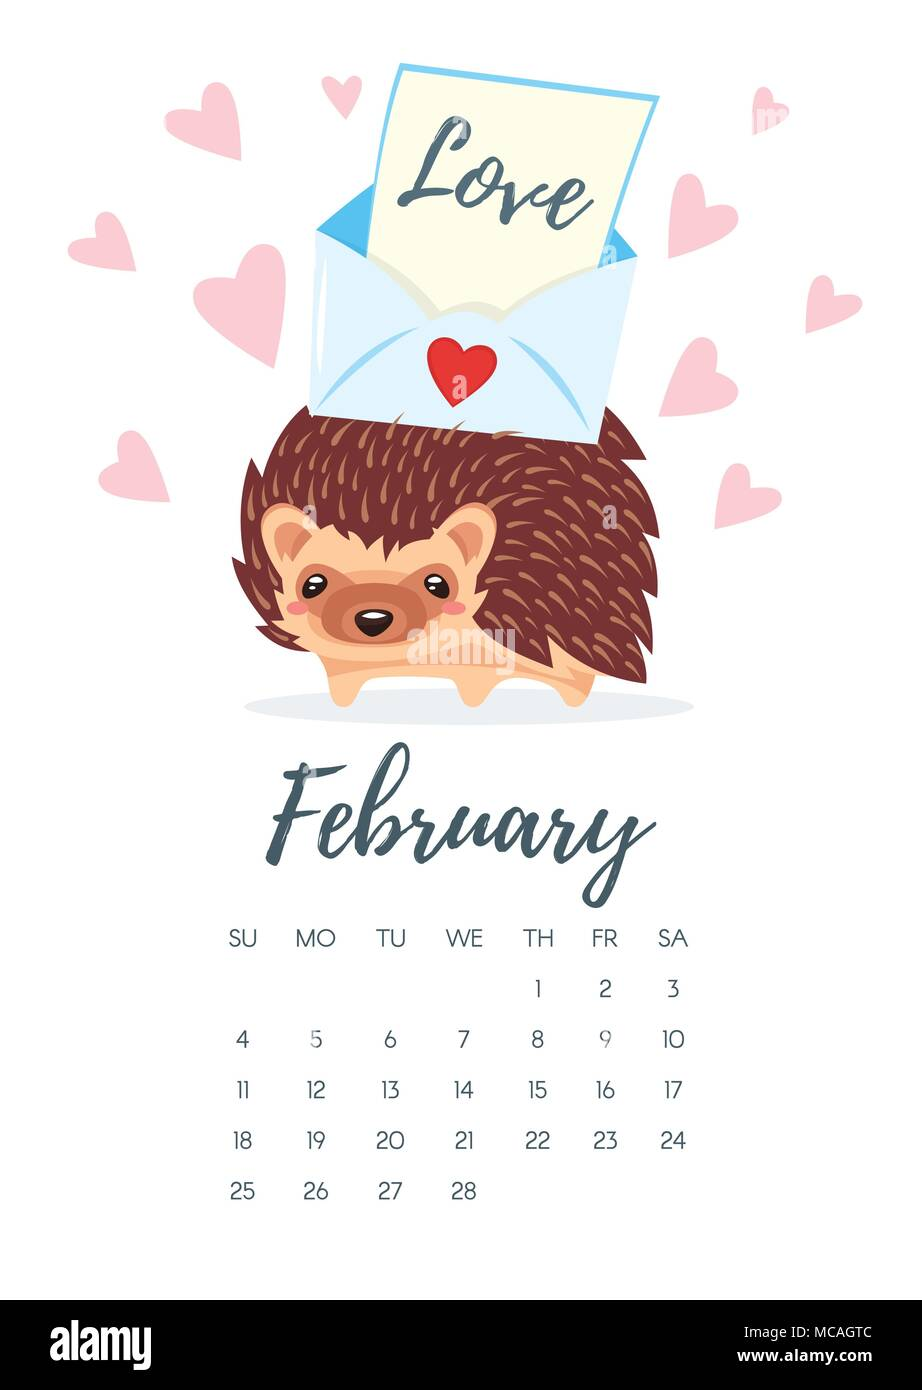 Vector cartoon style illustration of February 2018 year calendar page with hedgehog with colorful letter on his back. Template for print. - Stock Image